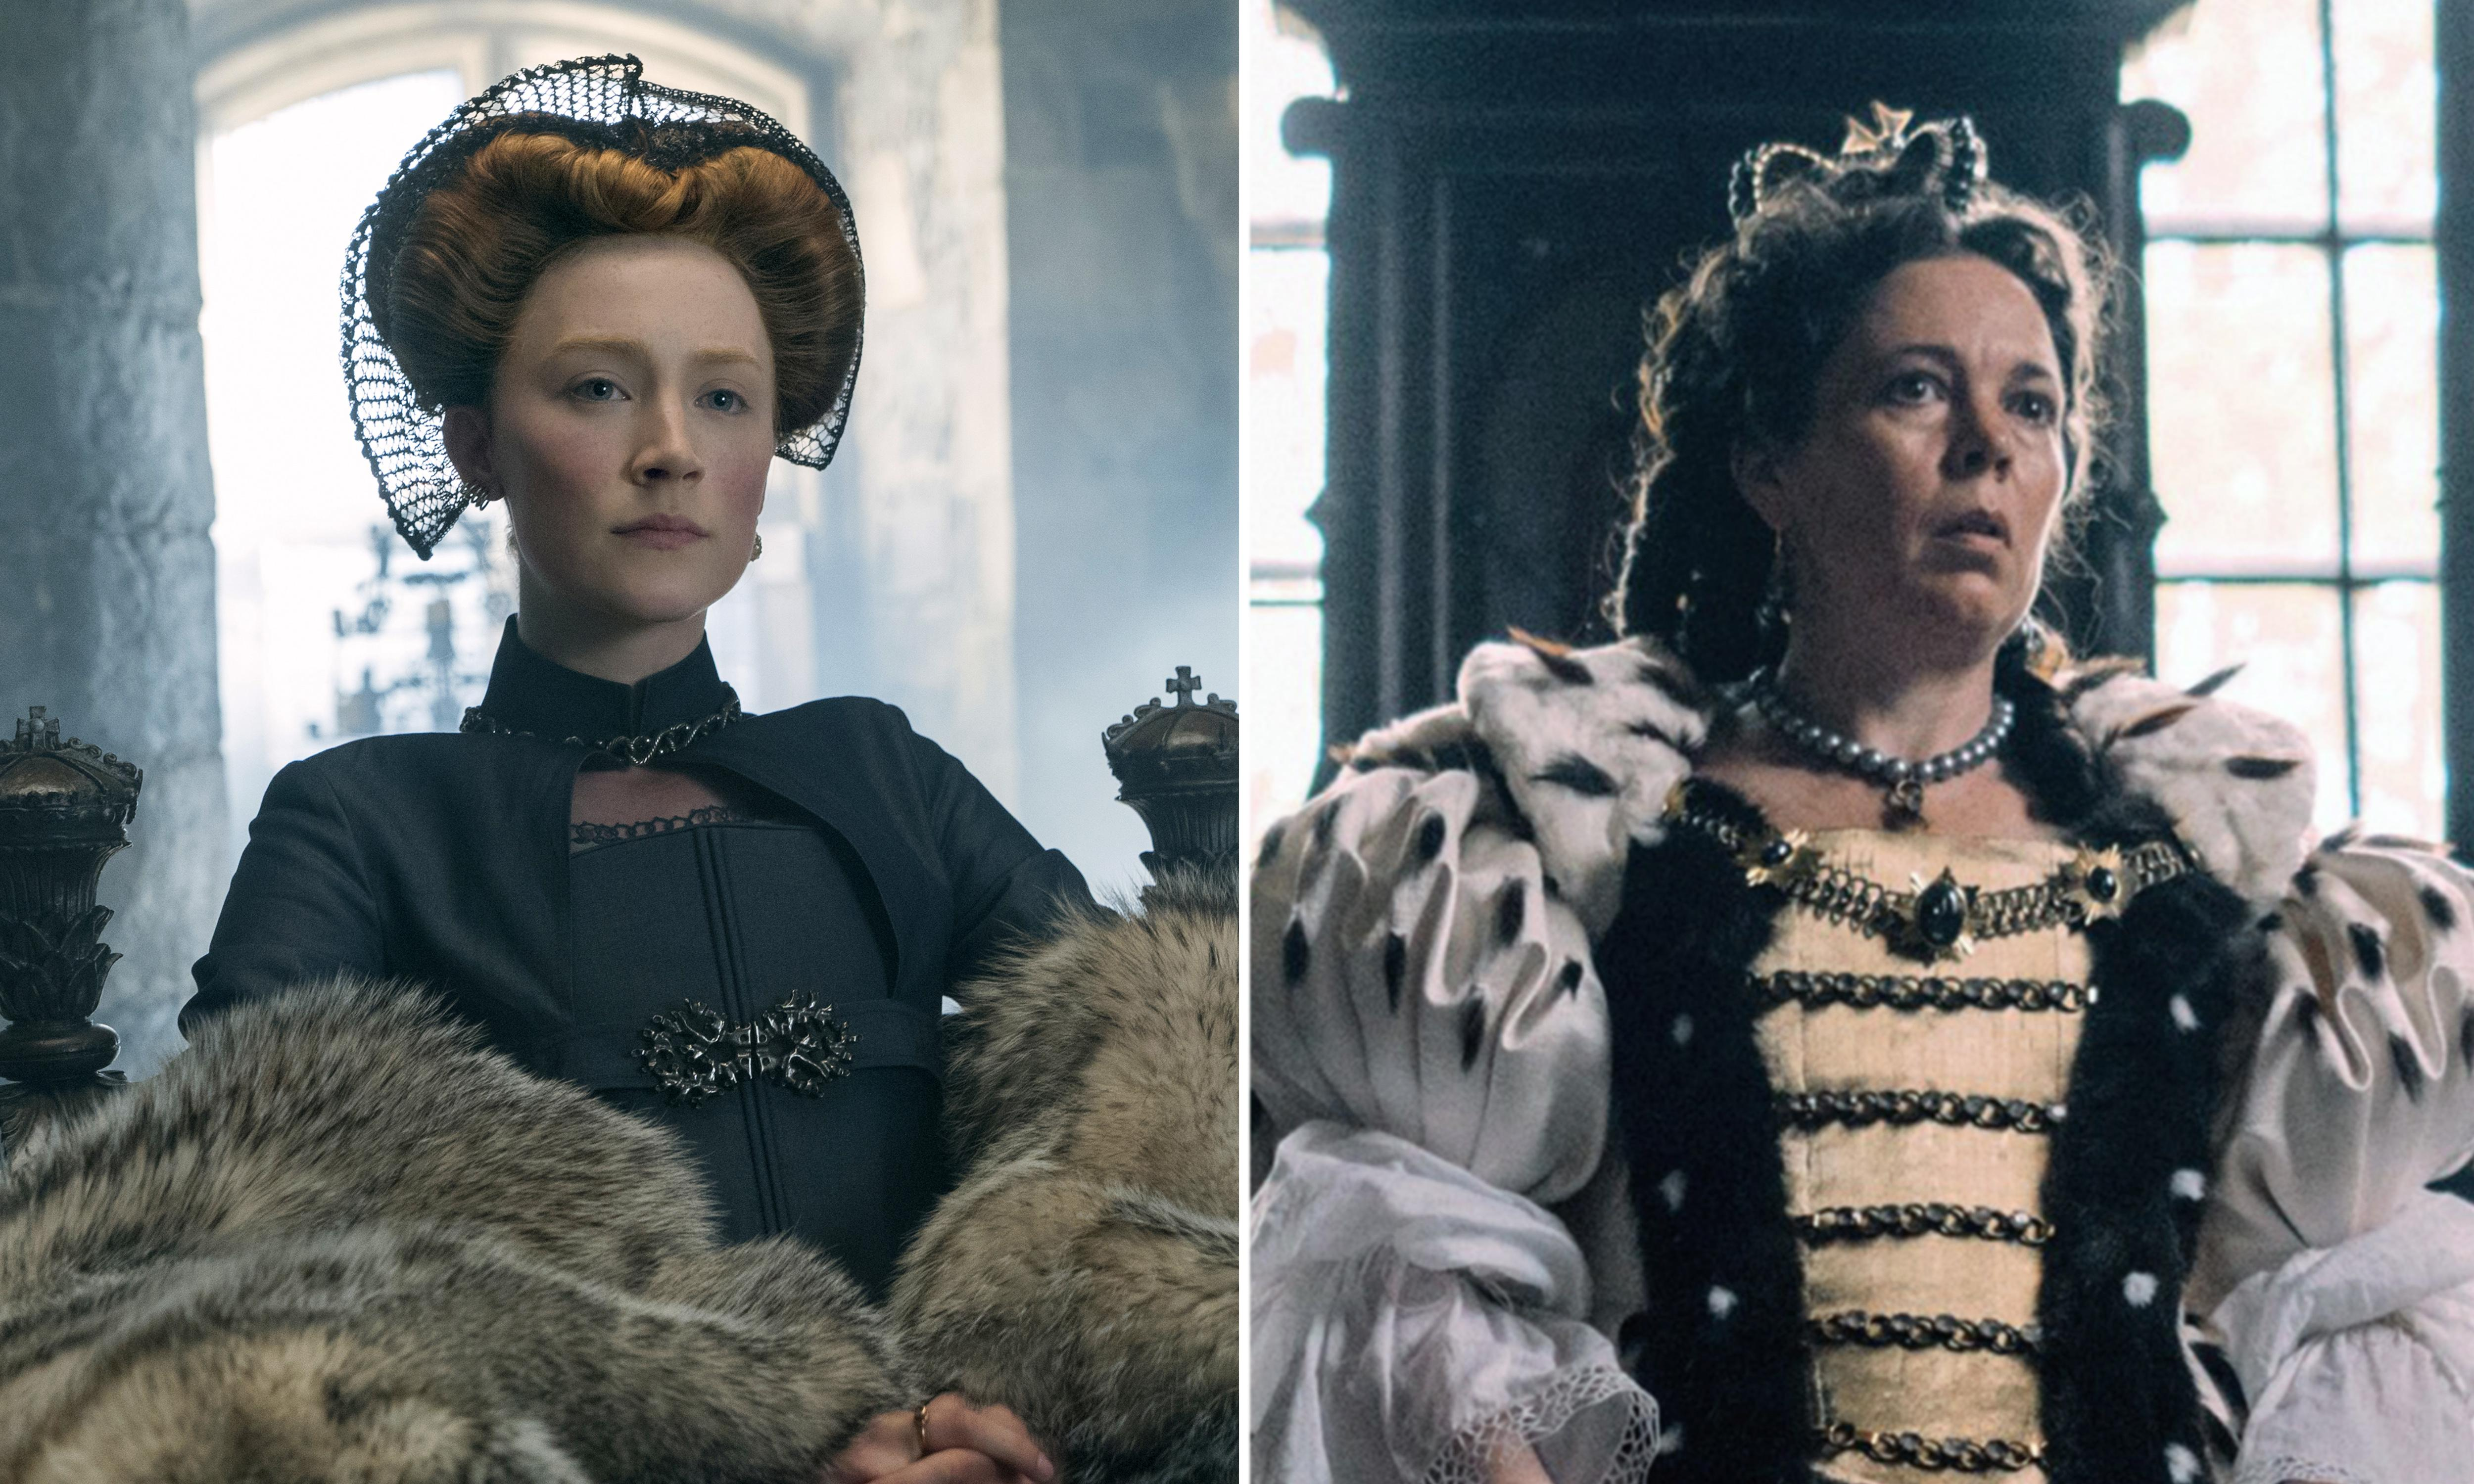 Killer queens: how The Favourite reigns over Mary Queen of Scots